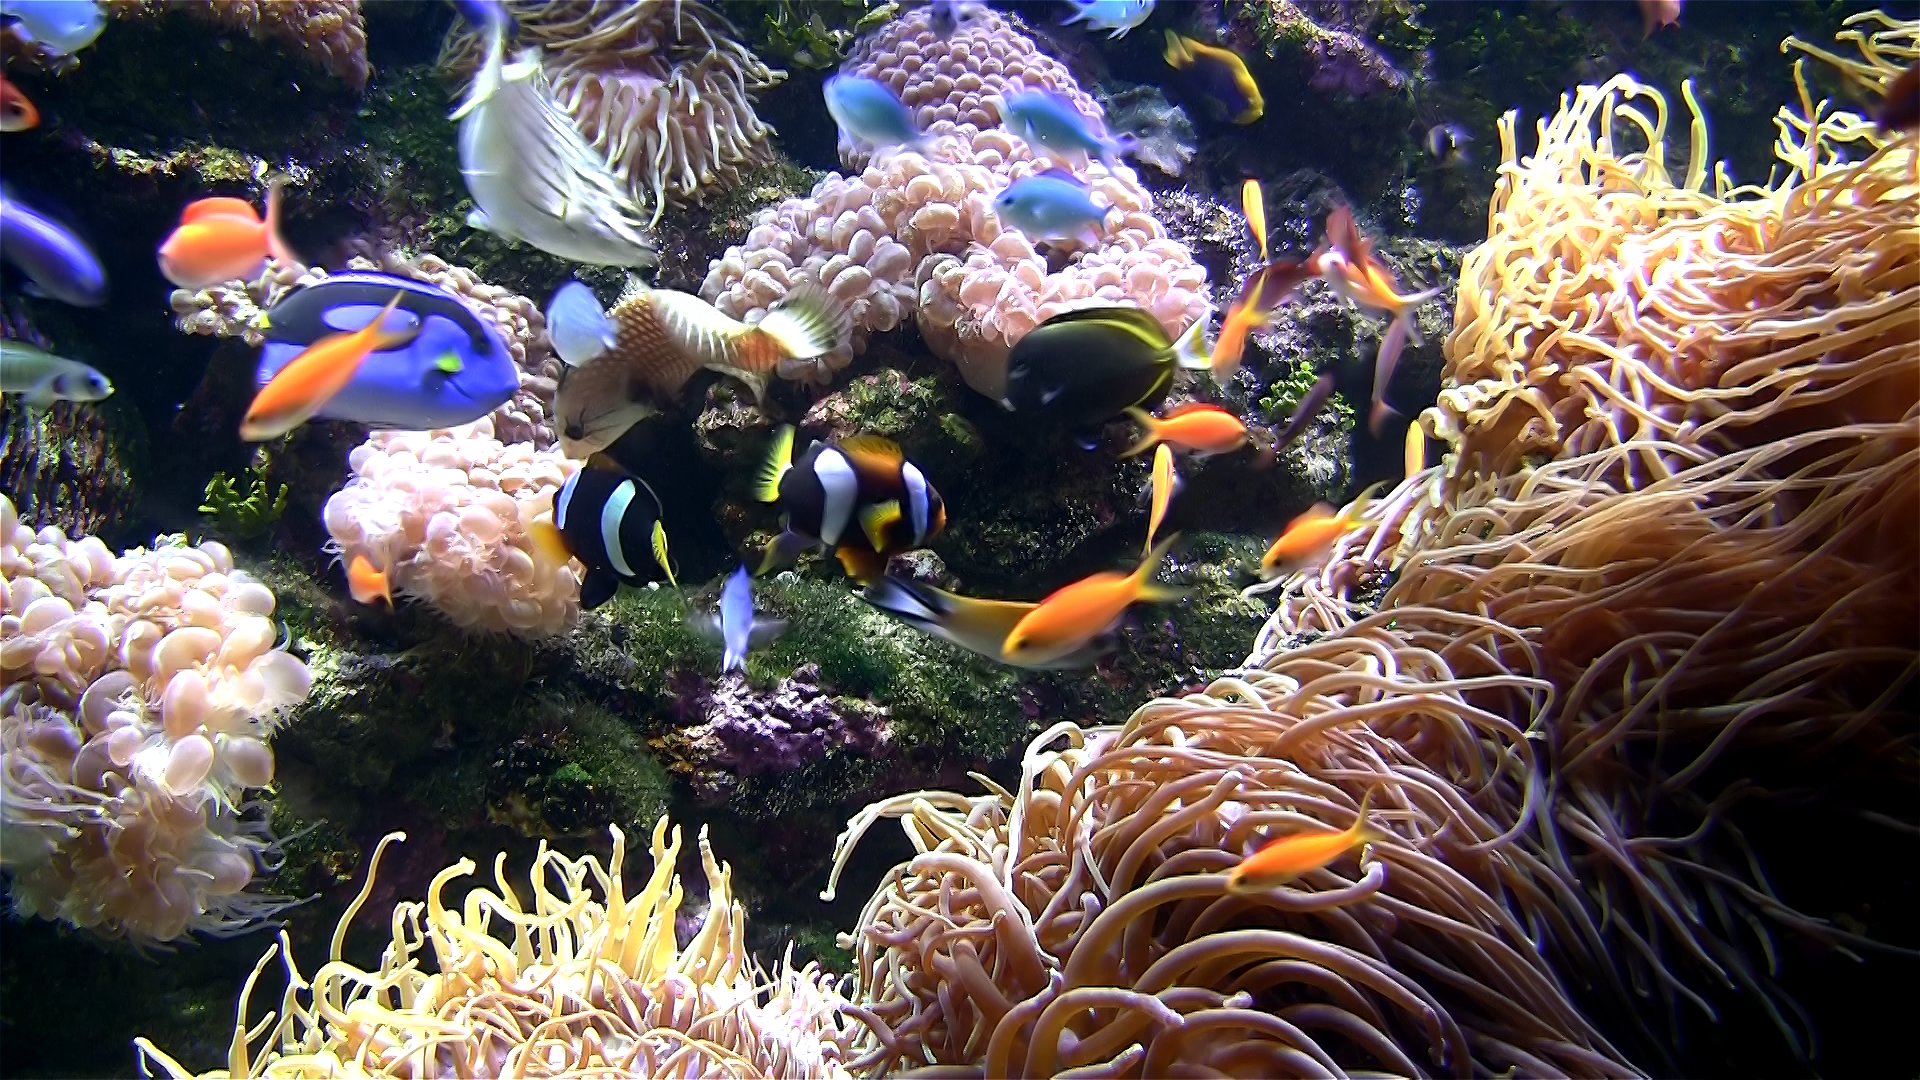 Aquarium live HD TV: Coral reef scenes with relaxing nature & ocean sounds for stress relief screenshot 3